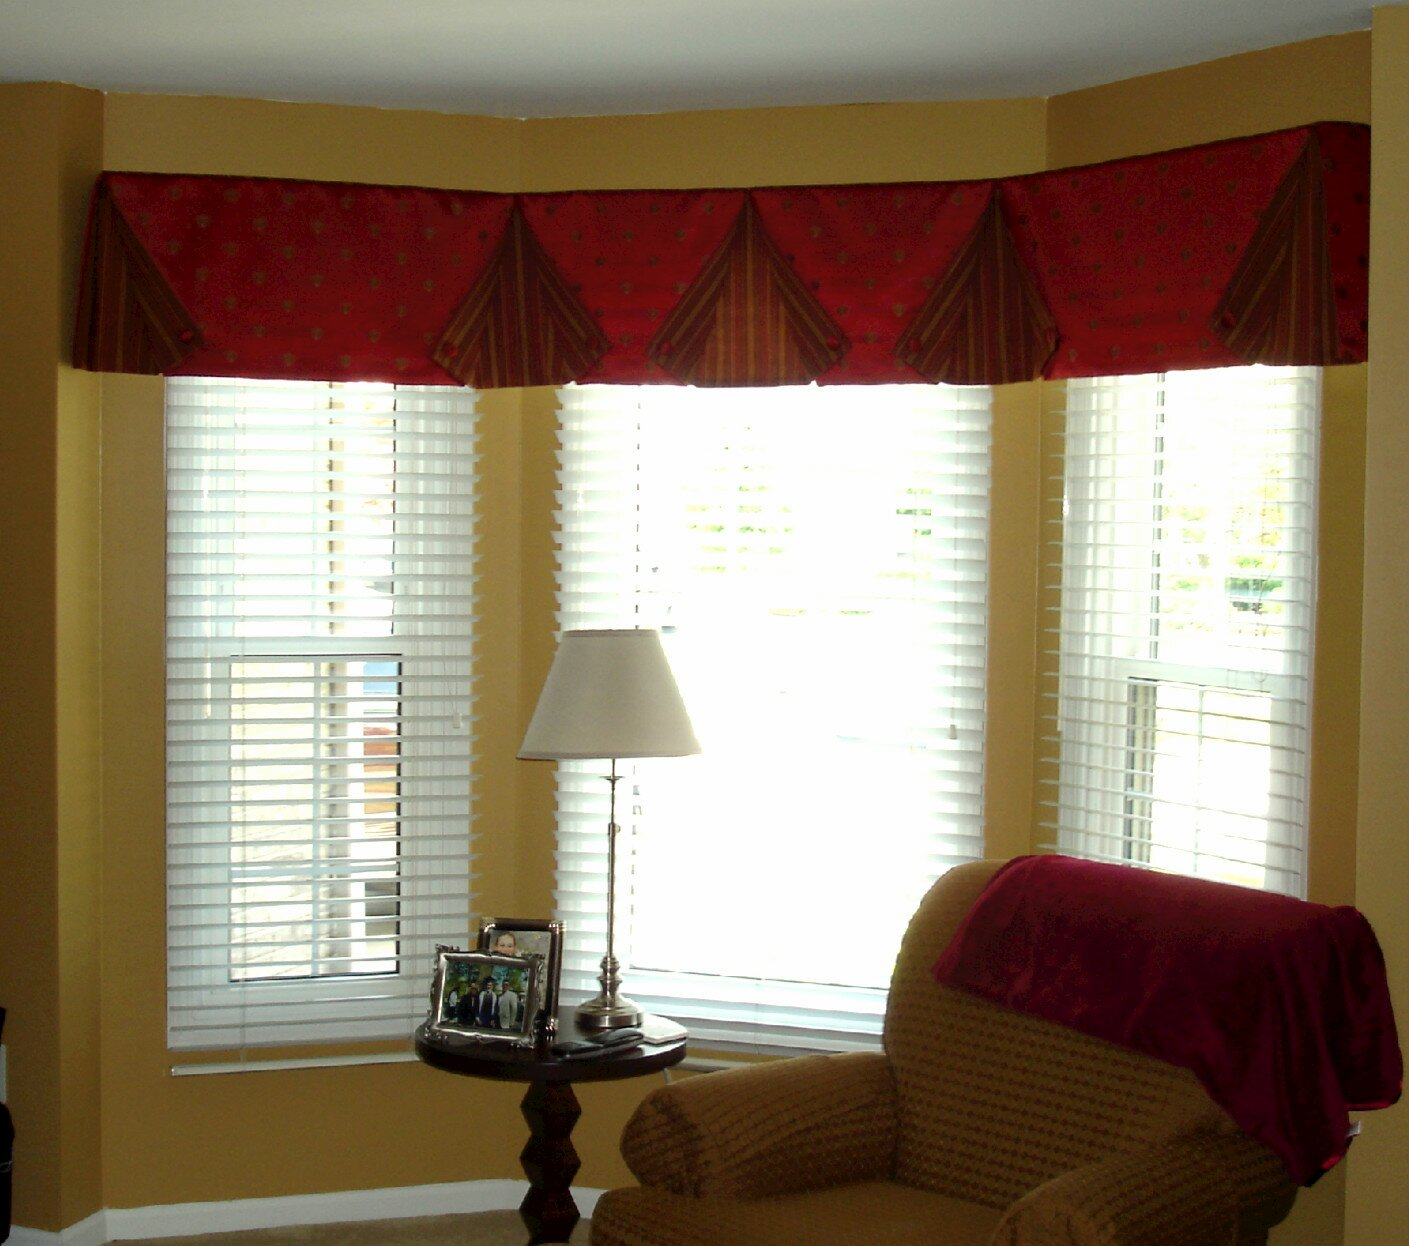 pleated pinterest coverings best window damask valance images black valances smith custom dining on in goblet room